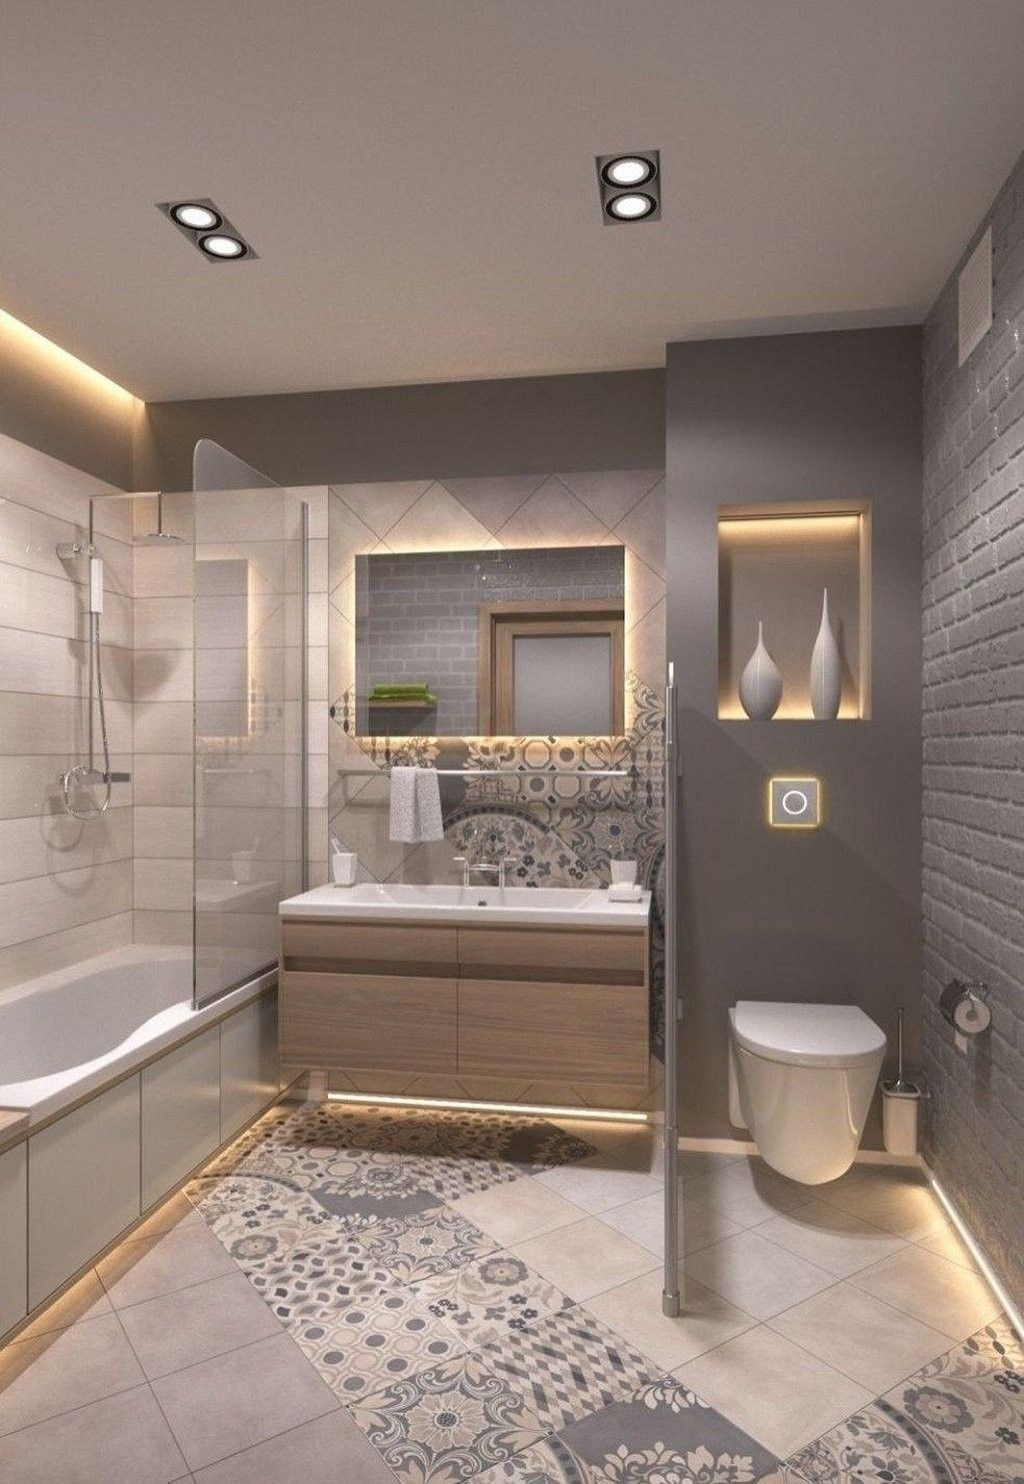 Bathroom Remodel Ideas It S Time To Remodel The Bathroom To Get Convenience In Your House L Bathrooms Remodel Bathroom Remodel Master Small Bathroom Remodel